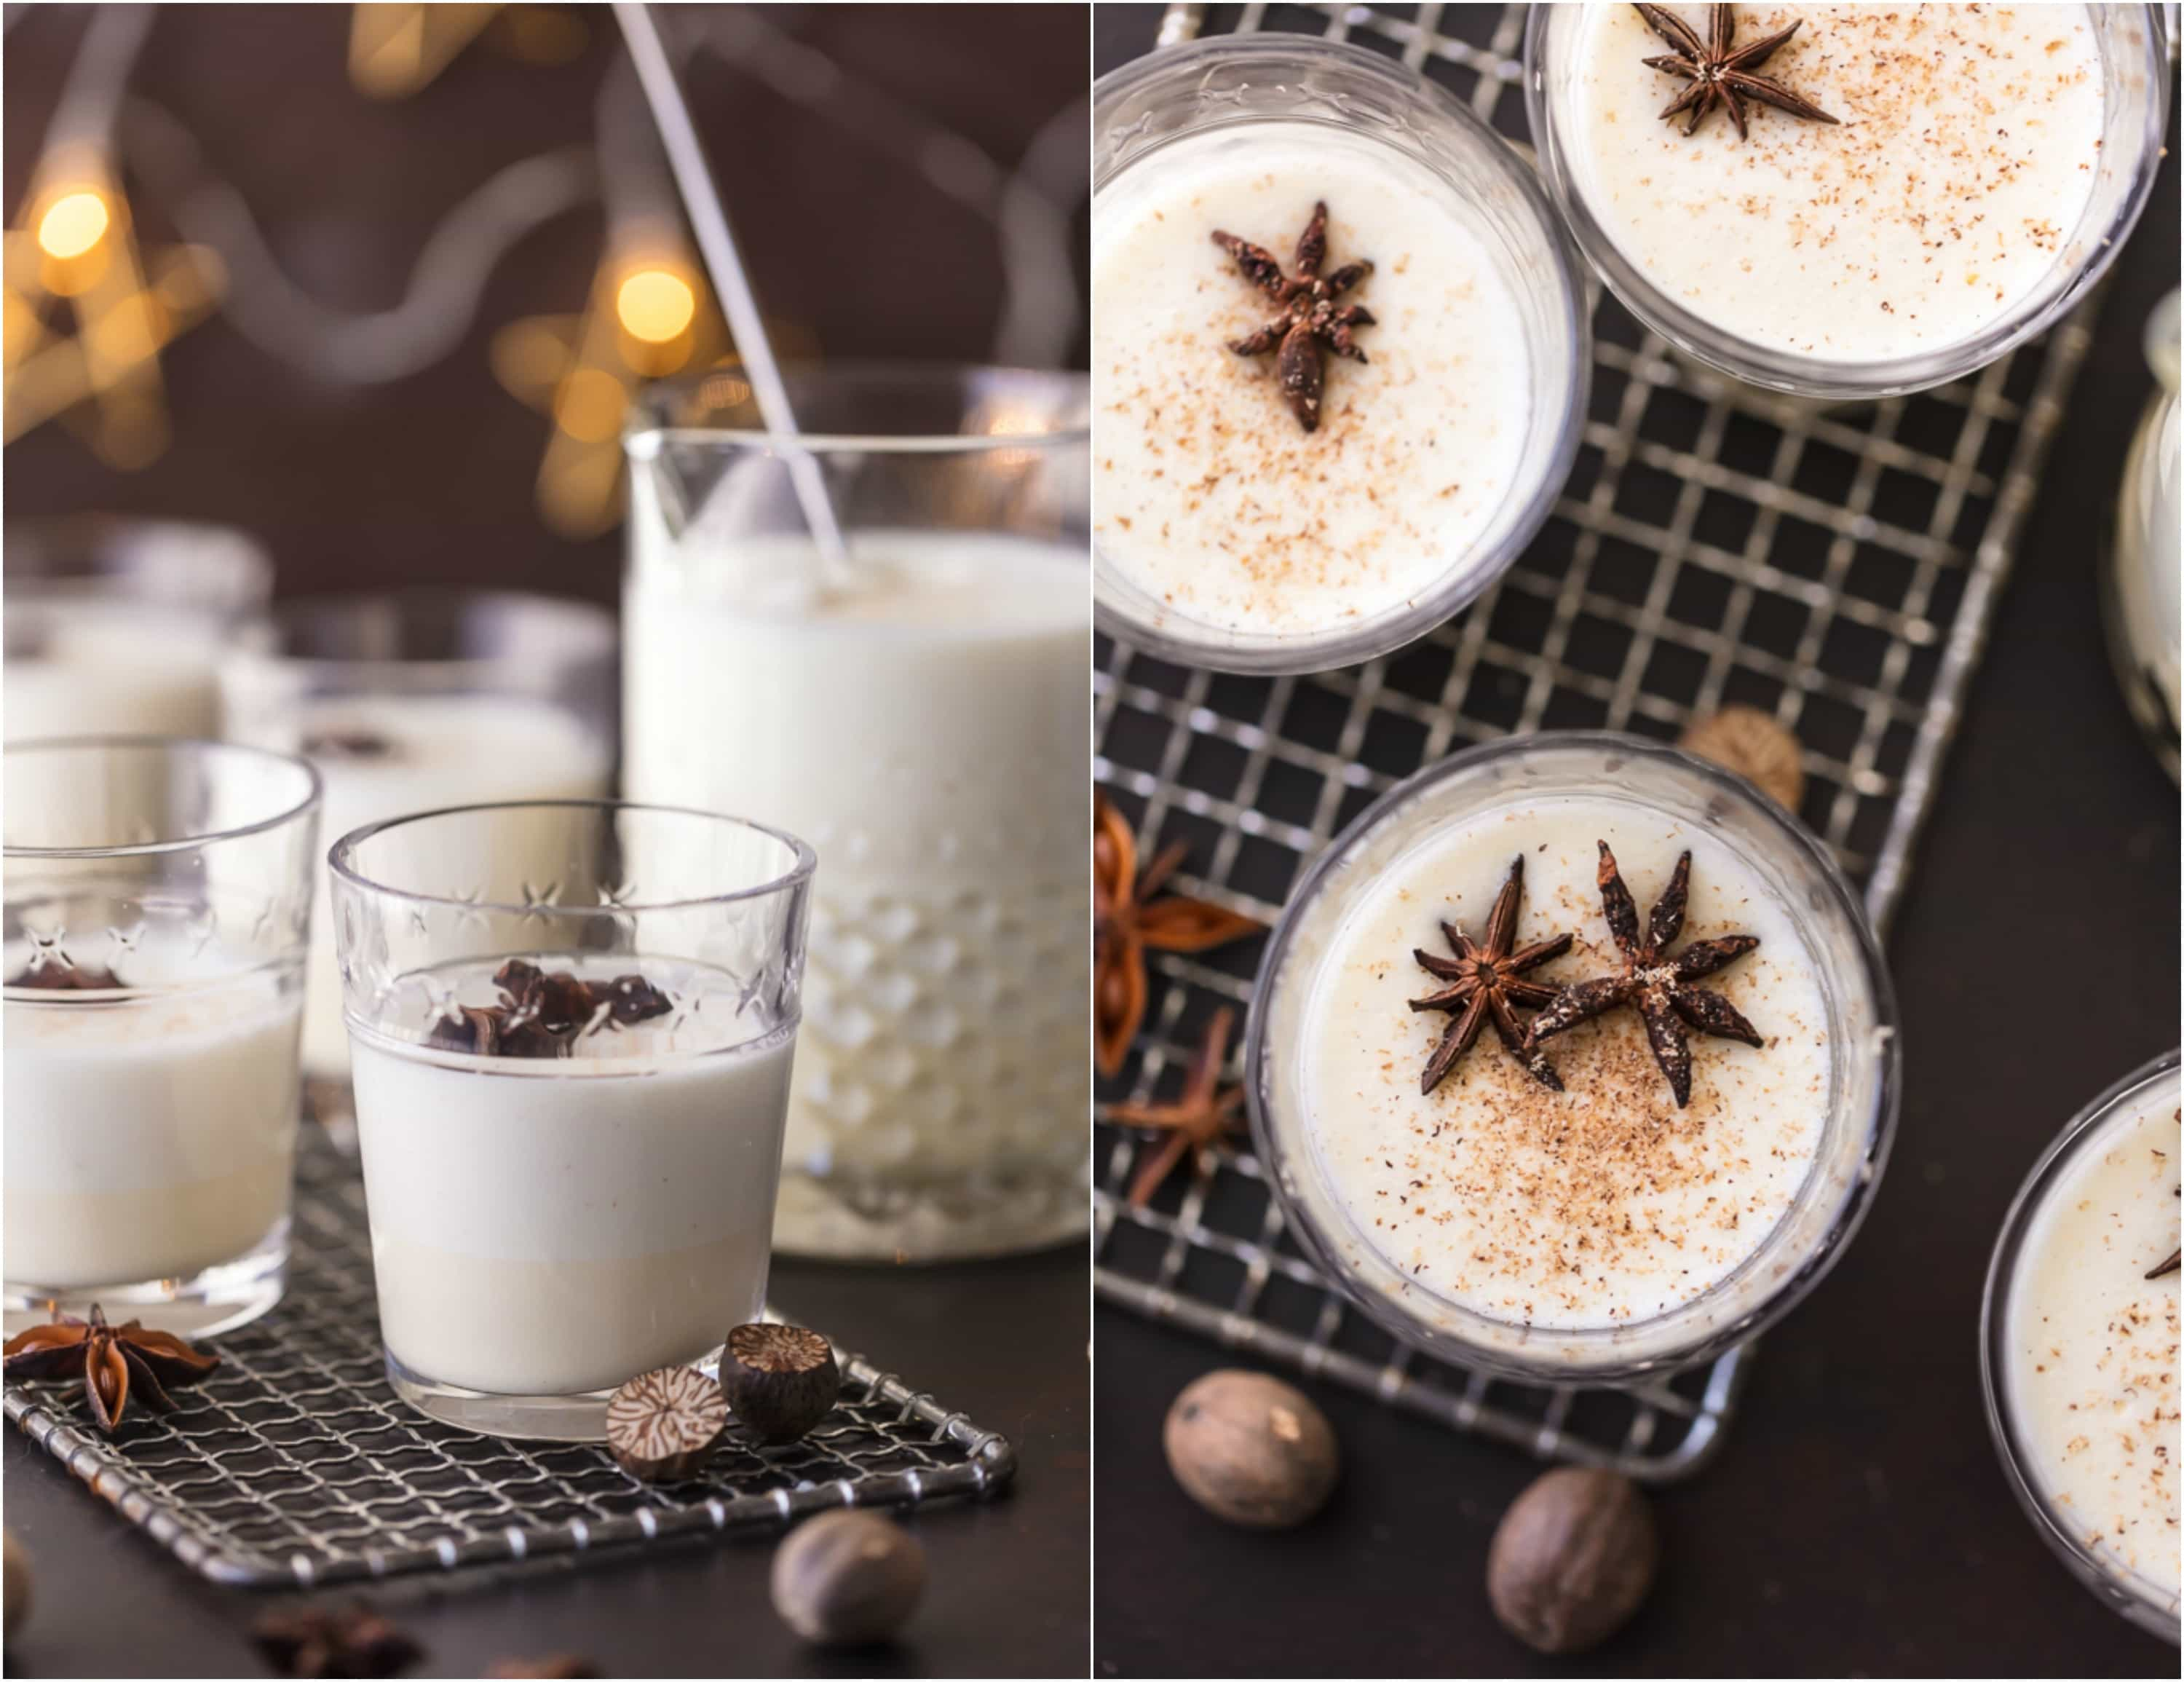 photo collage showing glasses of homemade traditional alcoholic eggnog